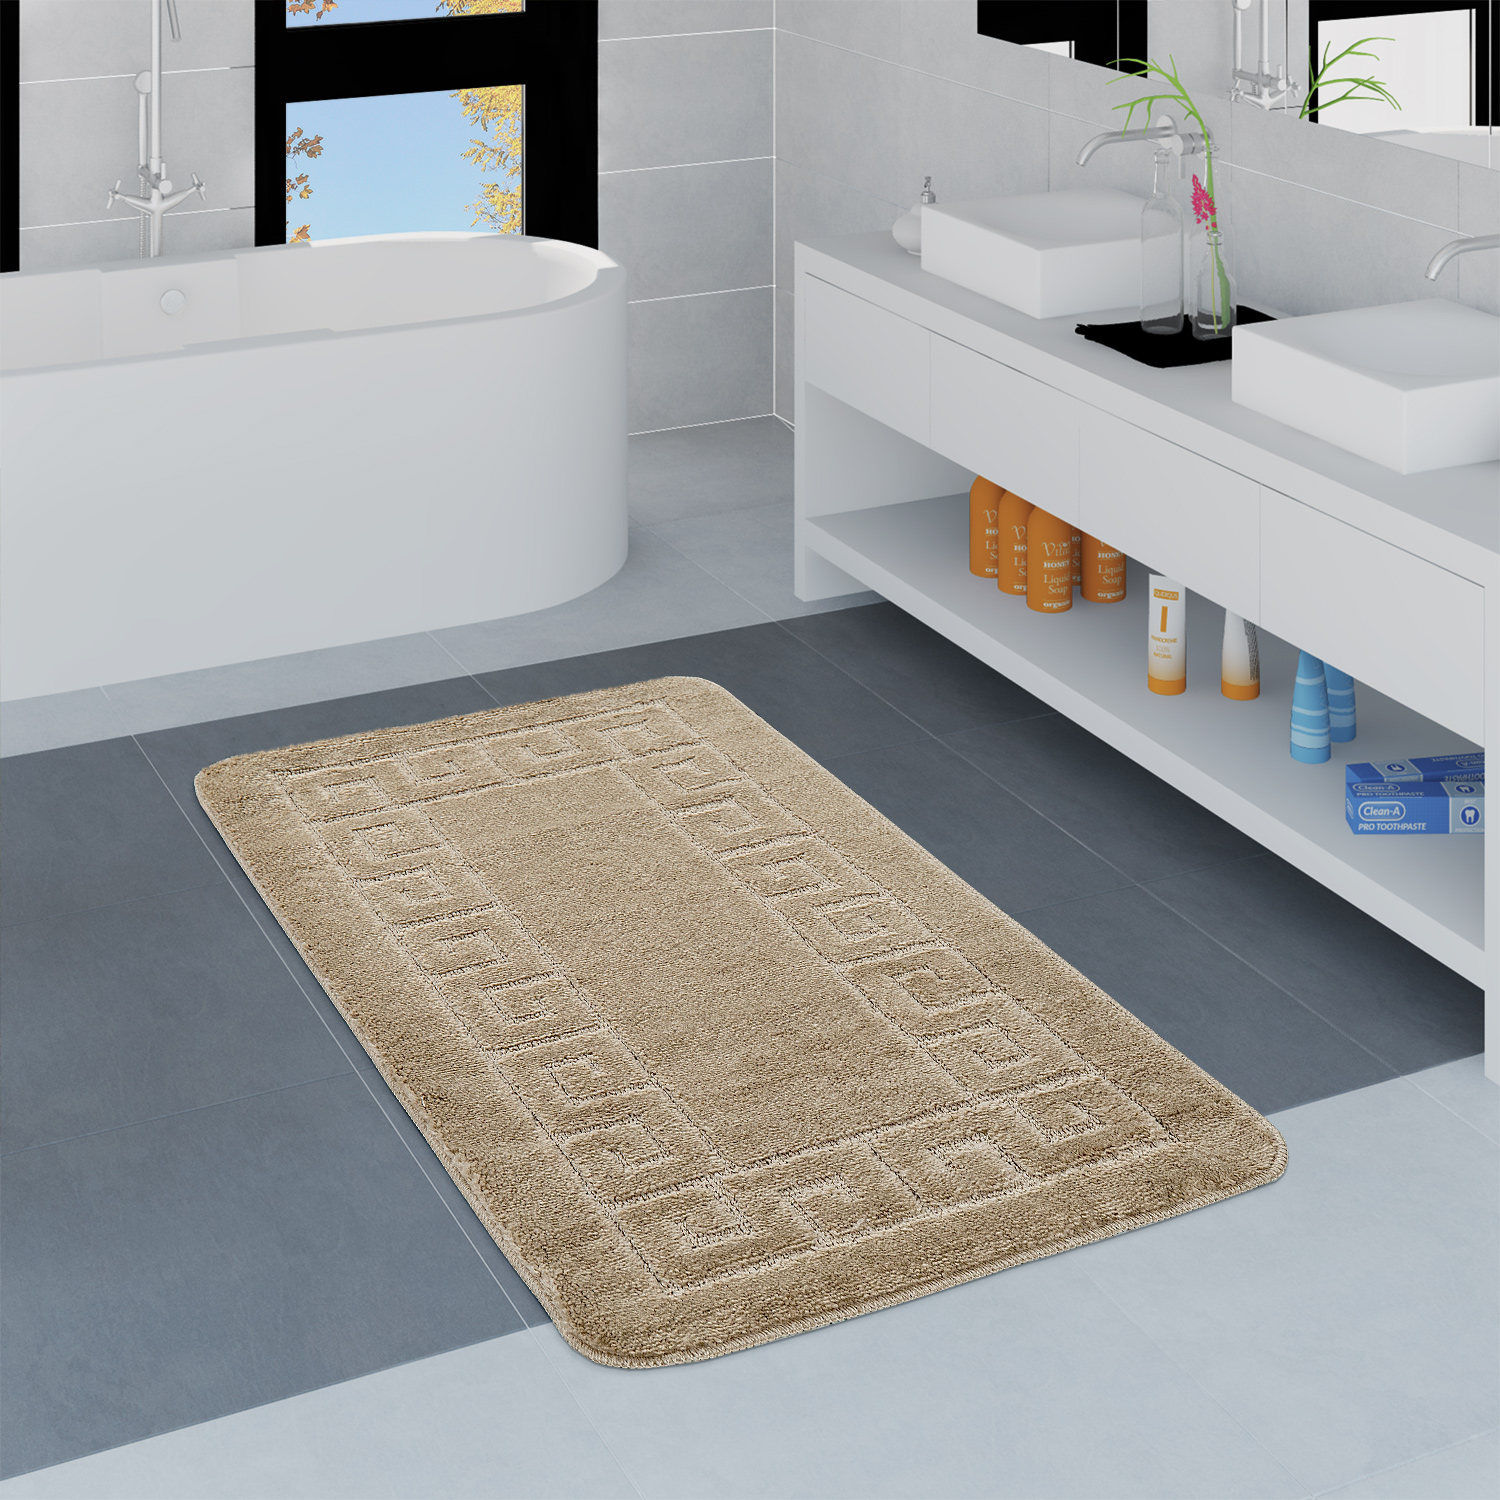 Modern Bathroom Rug Border Bathmat Non-Slip Bathroom Mat In Beige